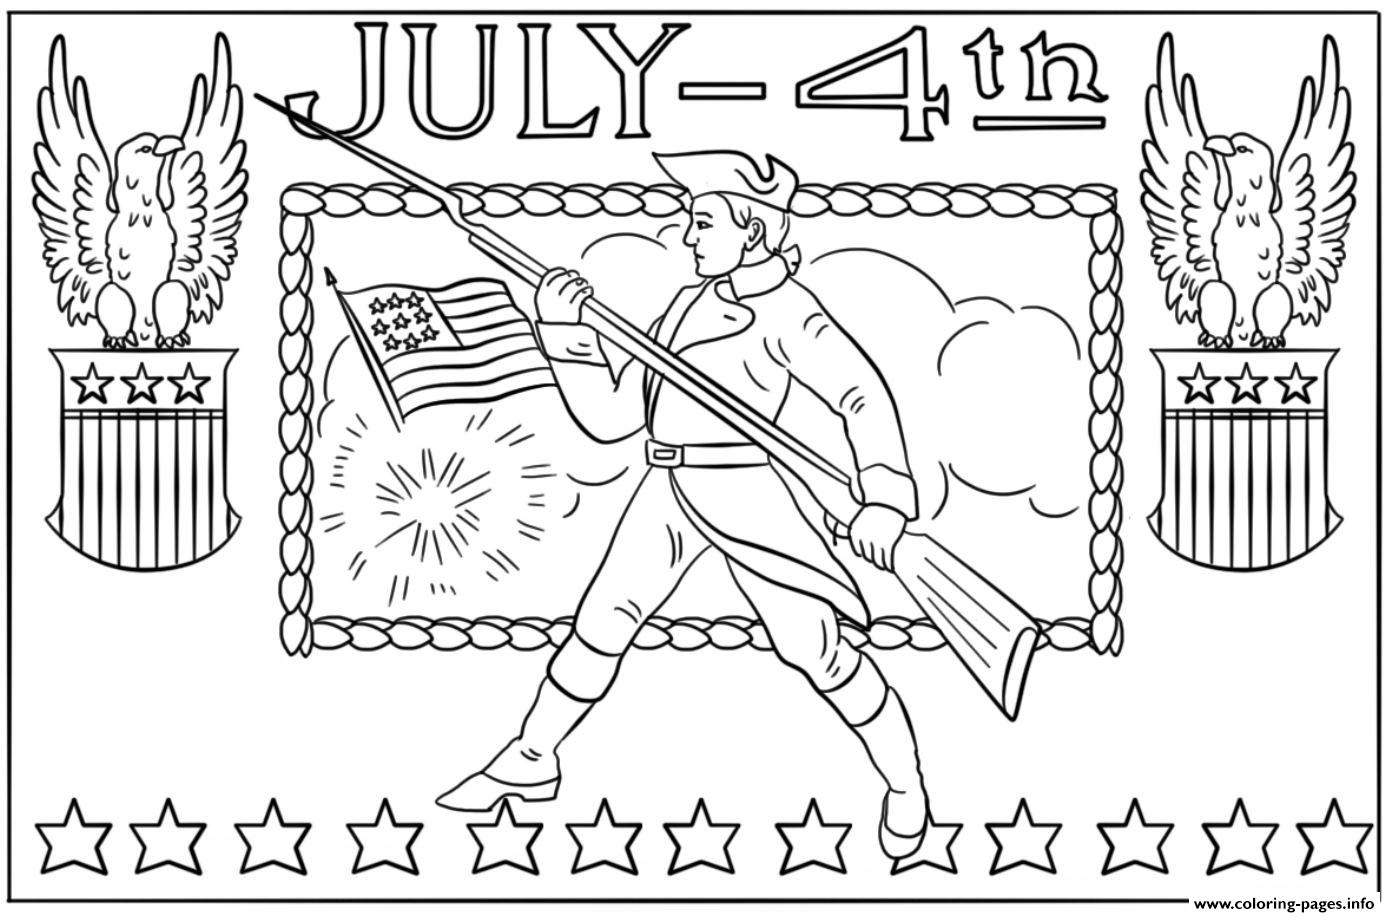 independence day coloring sheets independence day coloring pages free printable coloring day sheets independence 1 1